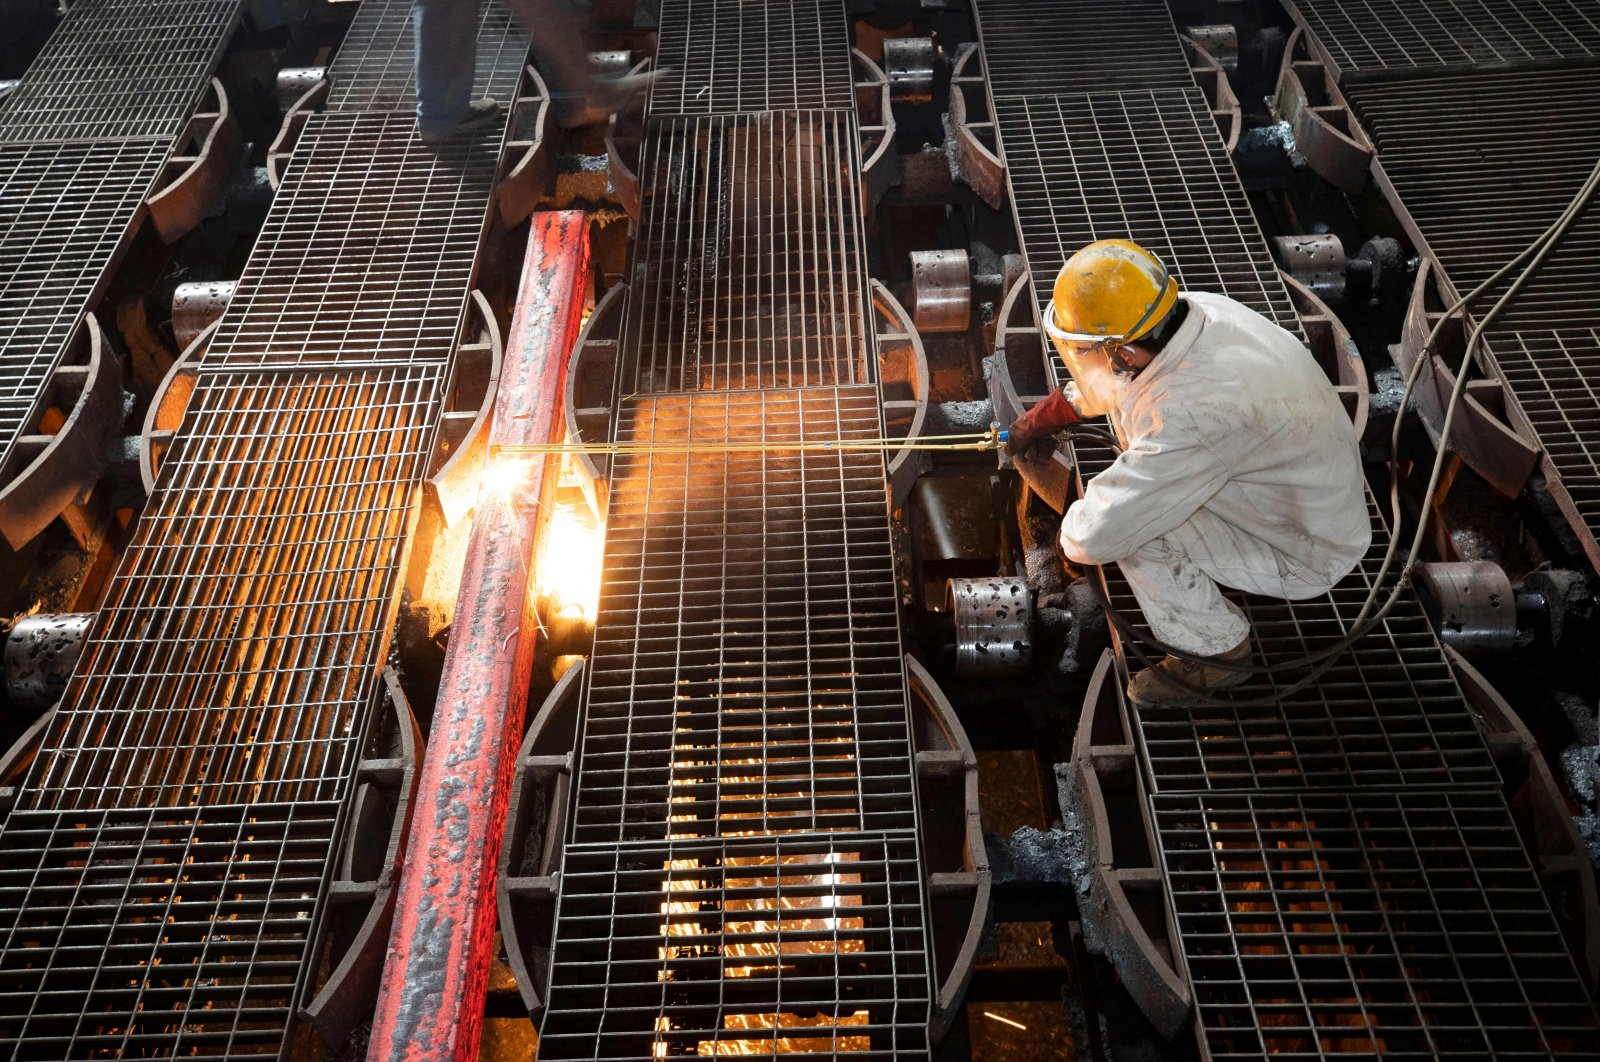 A worker makes an iron bar at a steel factory on the first day of the Lunar New Year, in Lianyungang, Jiangsu province, eastern China, on Feb. 12, 2021. (AFP Photo)